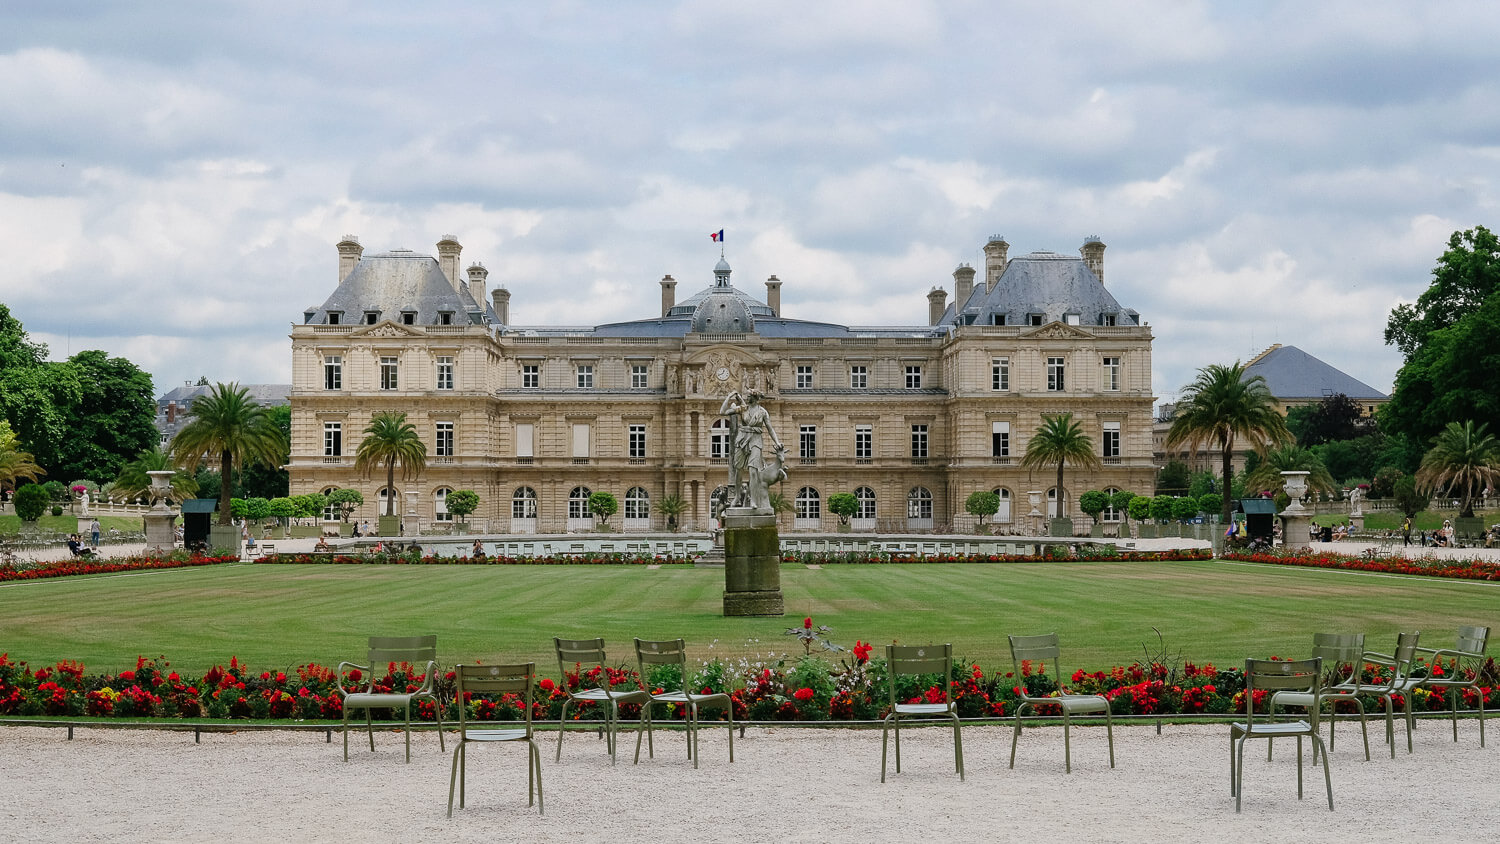 "The Jardin Luxembourg in Paris. Travel photography and guide by © Natasha Lequepeys for ""And Then I Met Yoko"". #paris #paristravel #photoblog #travelguide #france #parisitinerary #parishighlights #parissights #travelblog #travelphotography #landscapephotography #travelitinerary #fujifilm #paristravelguide #architecturephotography #europe #travelblogger #wanderlust #explore #travel"